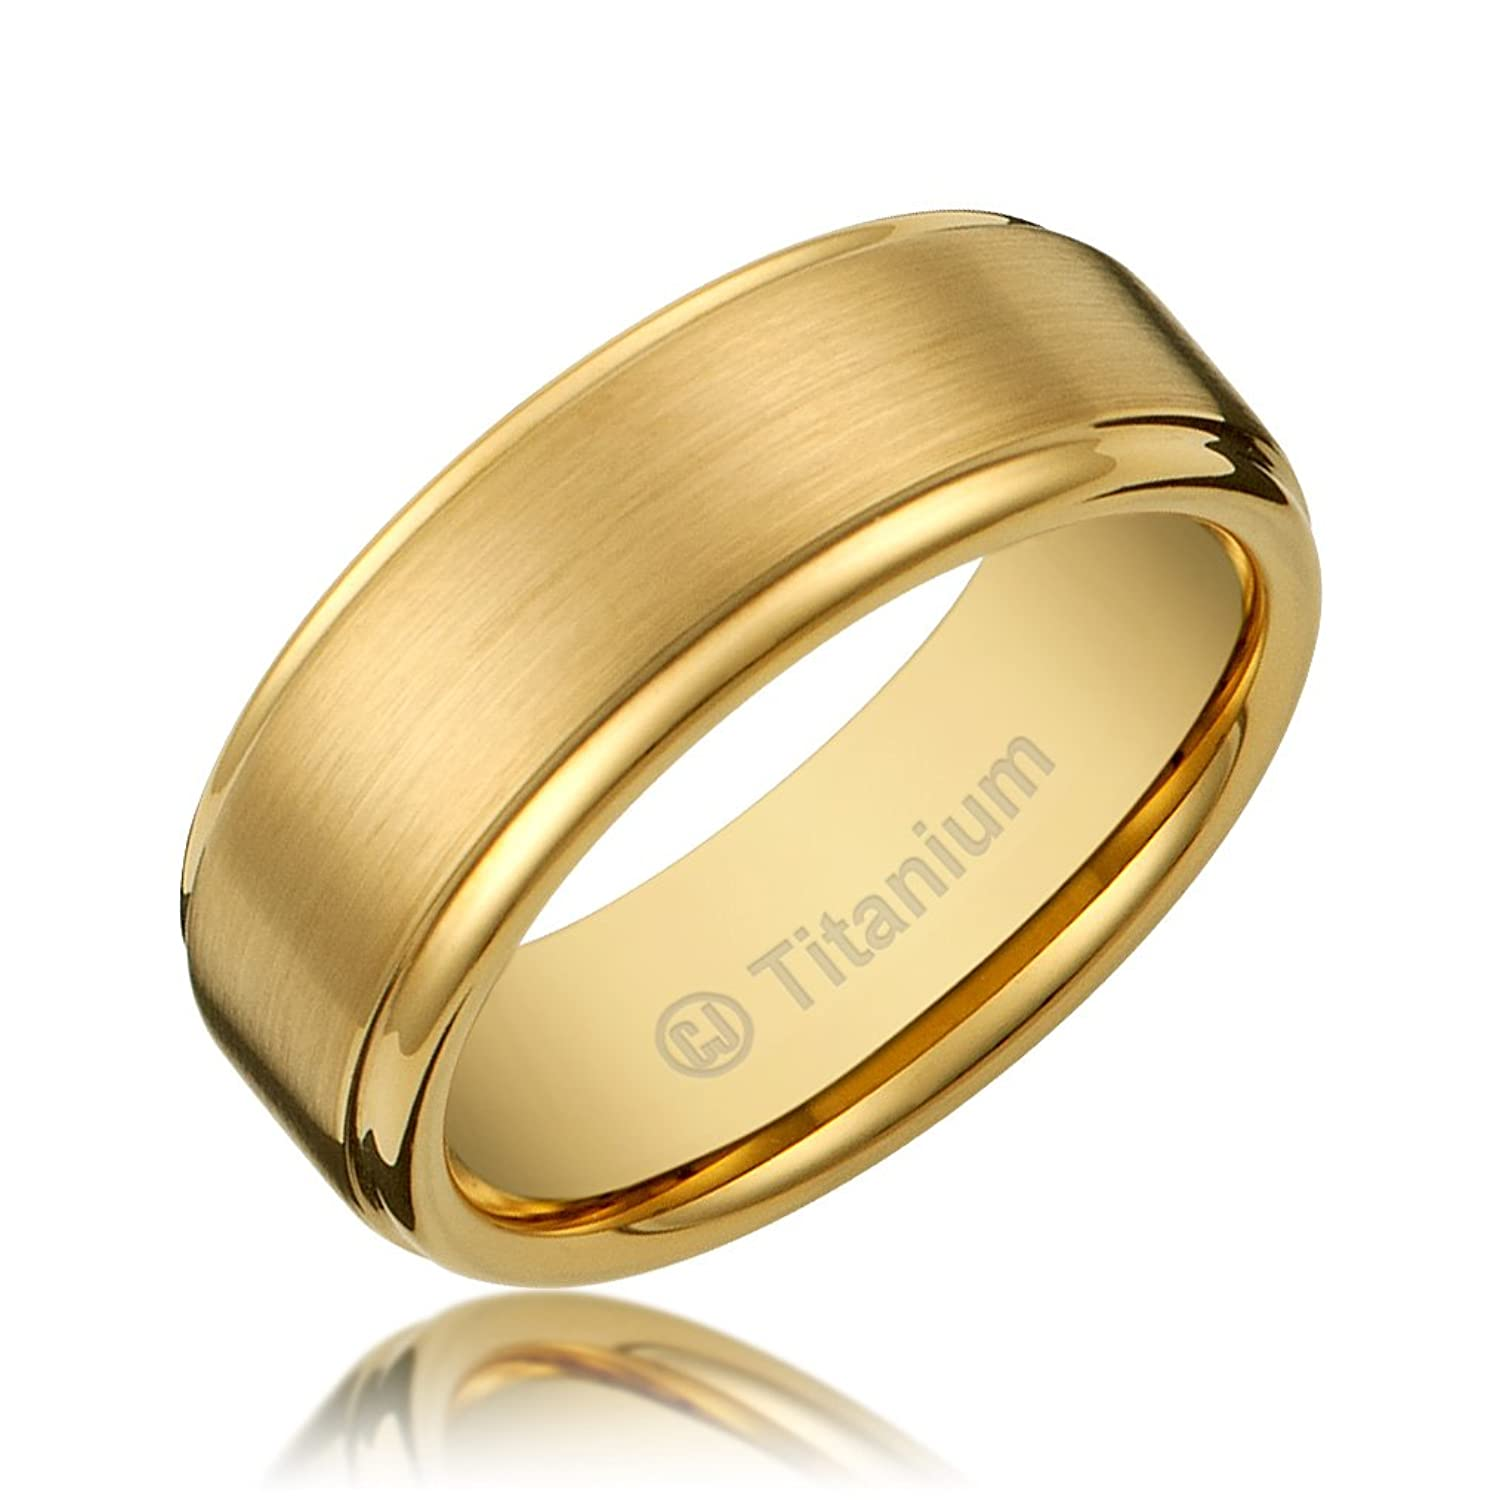 8mm mens titanium gold plated ring wedding band with flat brushed top and polished finish edgesamazoncom - Flat Wedding Rings